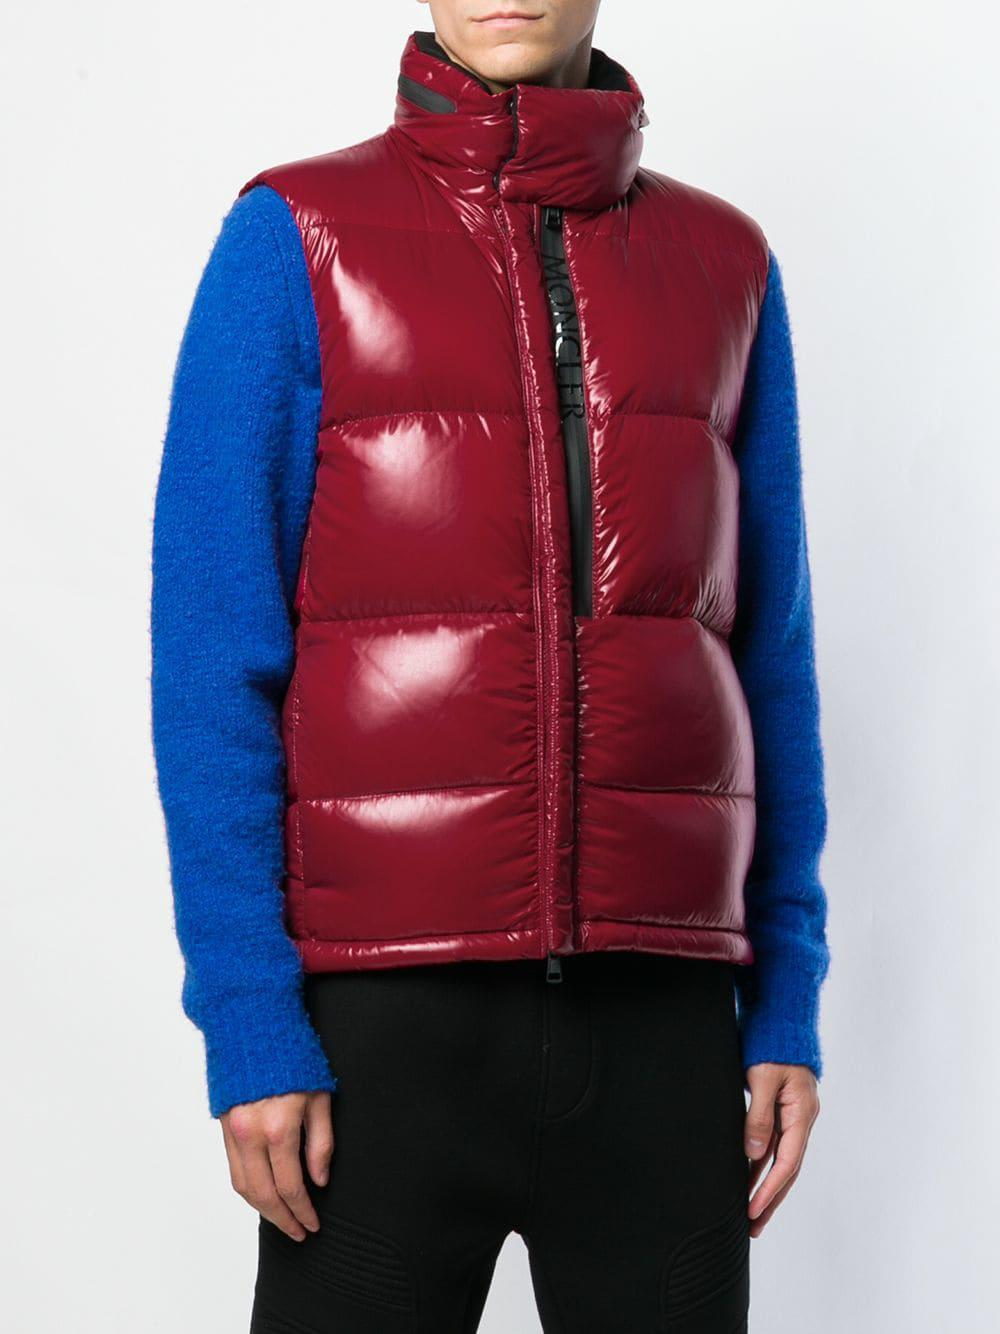 2bd5b8a65d5d Moncler - Red Contrast Stripe Padded Gilet for Men - Lyst. View fullscreen